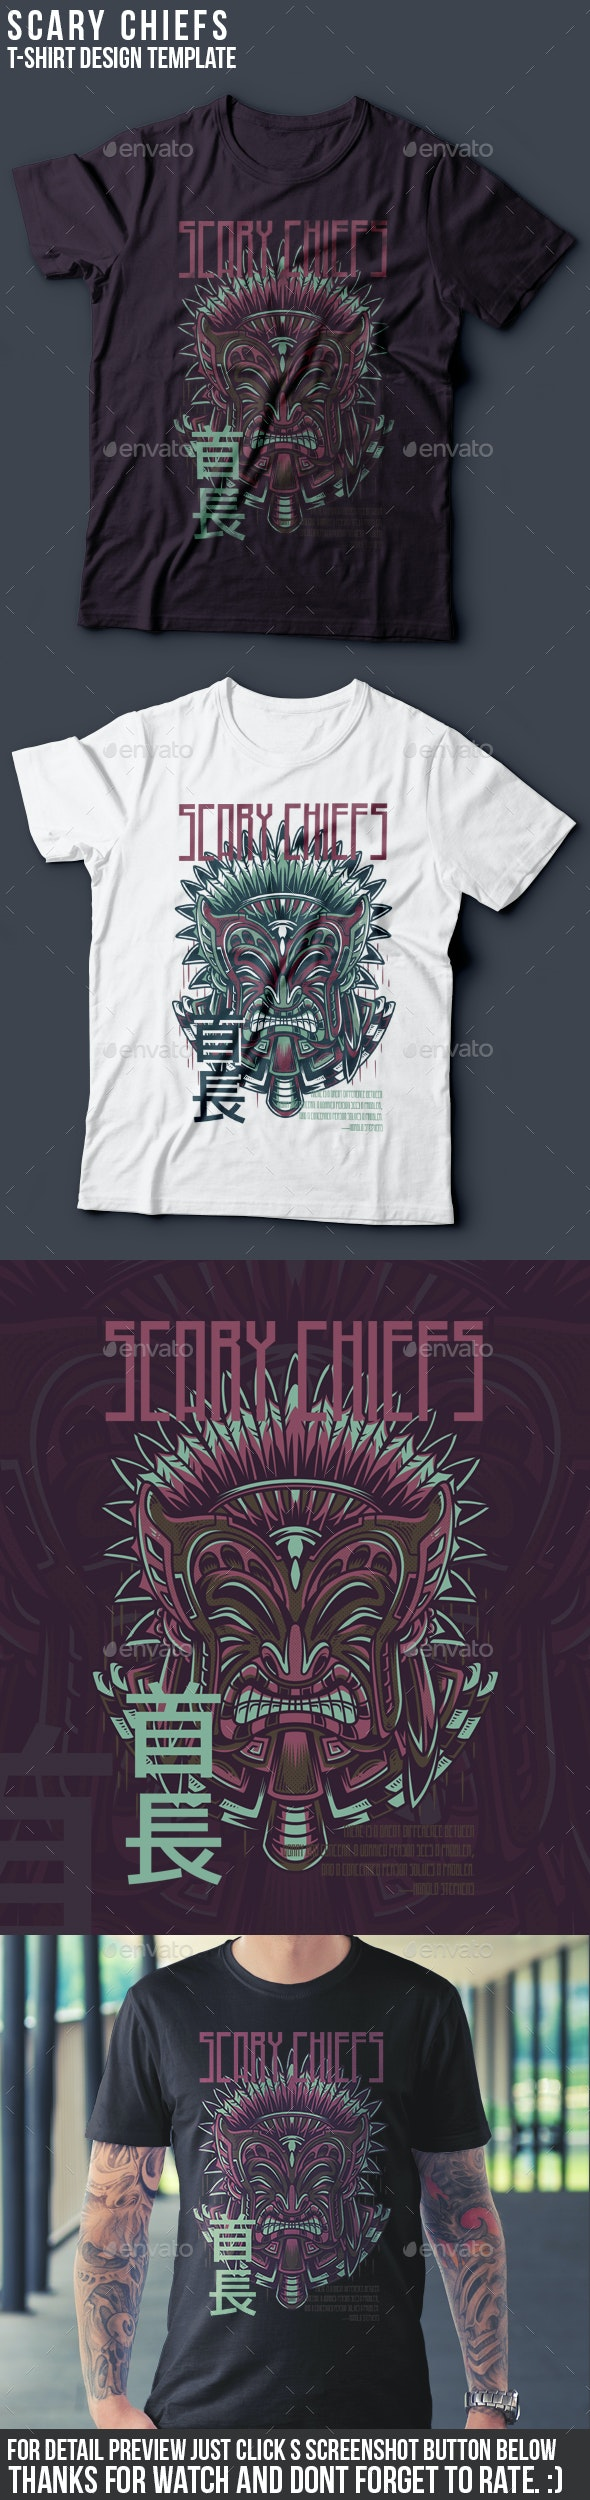 Scary Chiefs T-Shirt Design - Grunge Designs